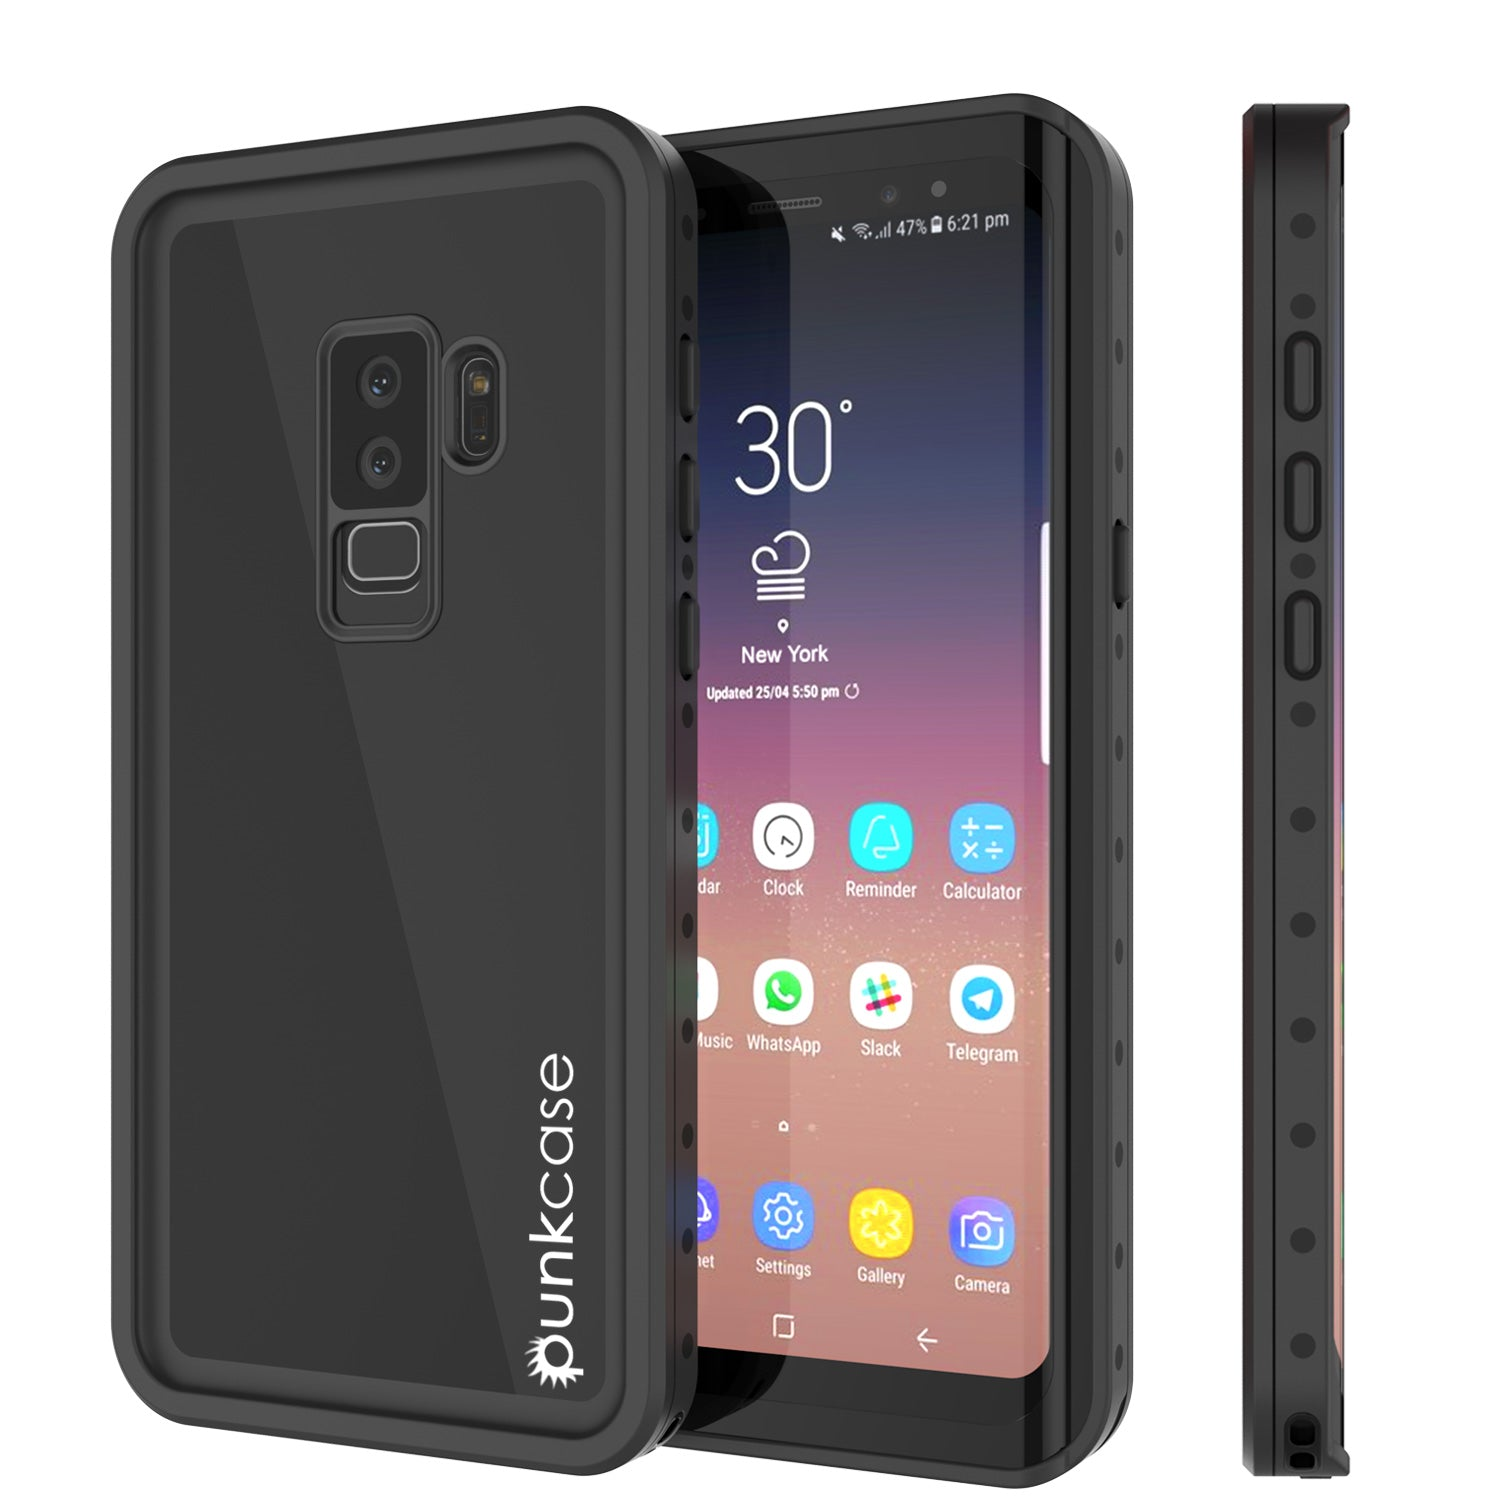 huge selection of f0bcb fec98 Galaxy S9 Plus Waterproof Case PunkCase StudStar Black Thin 6.6ft  Underwater IP68 Shock/Snow Proof